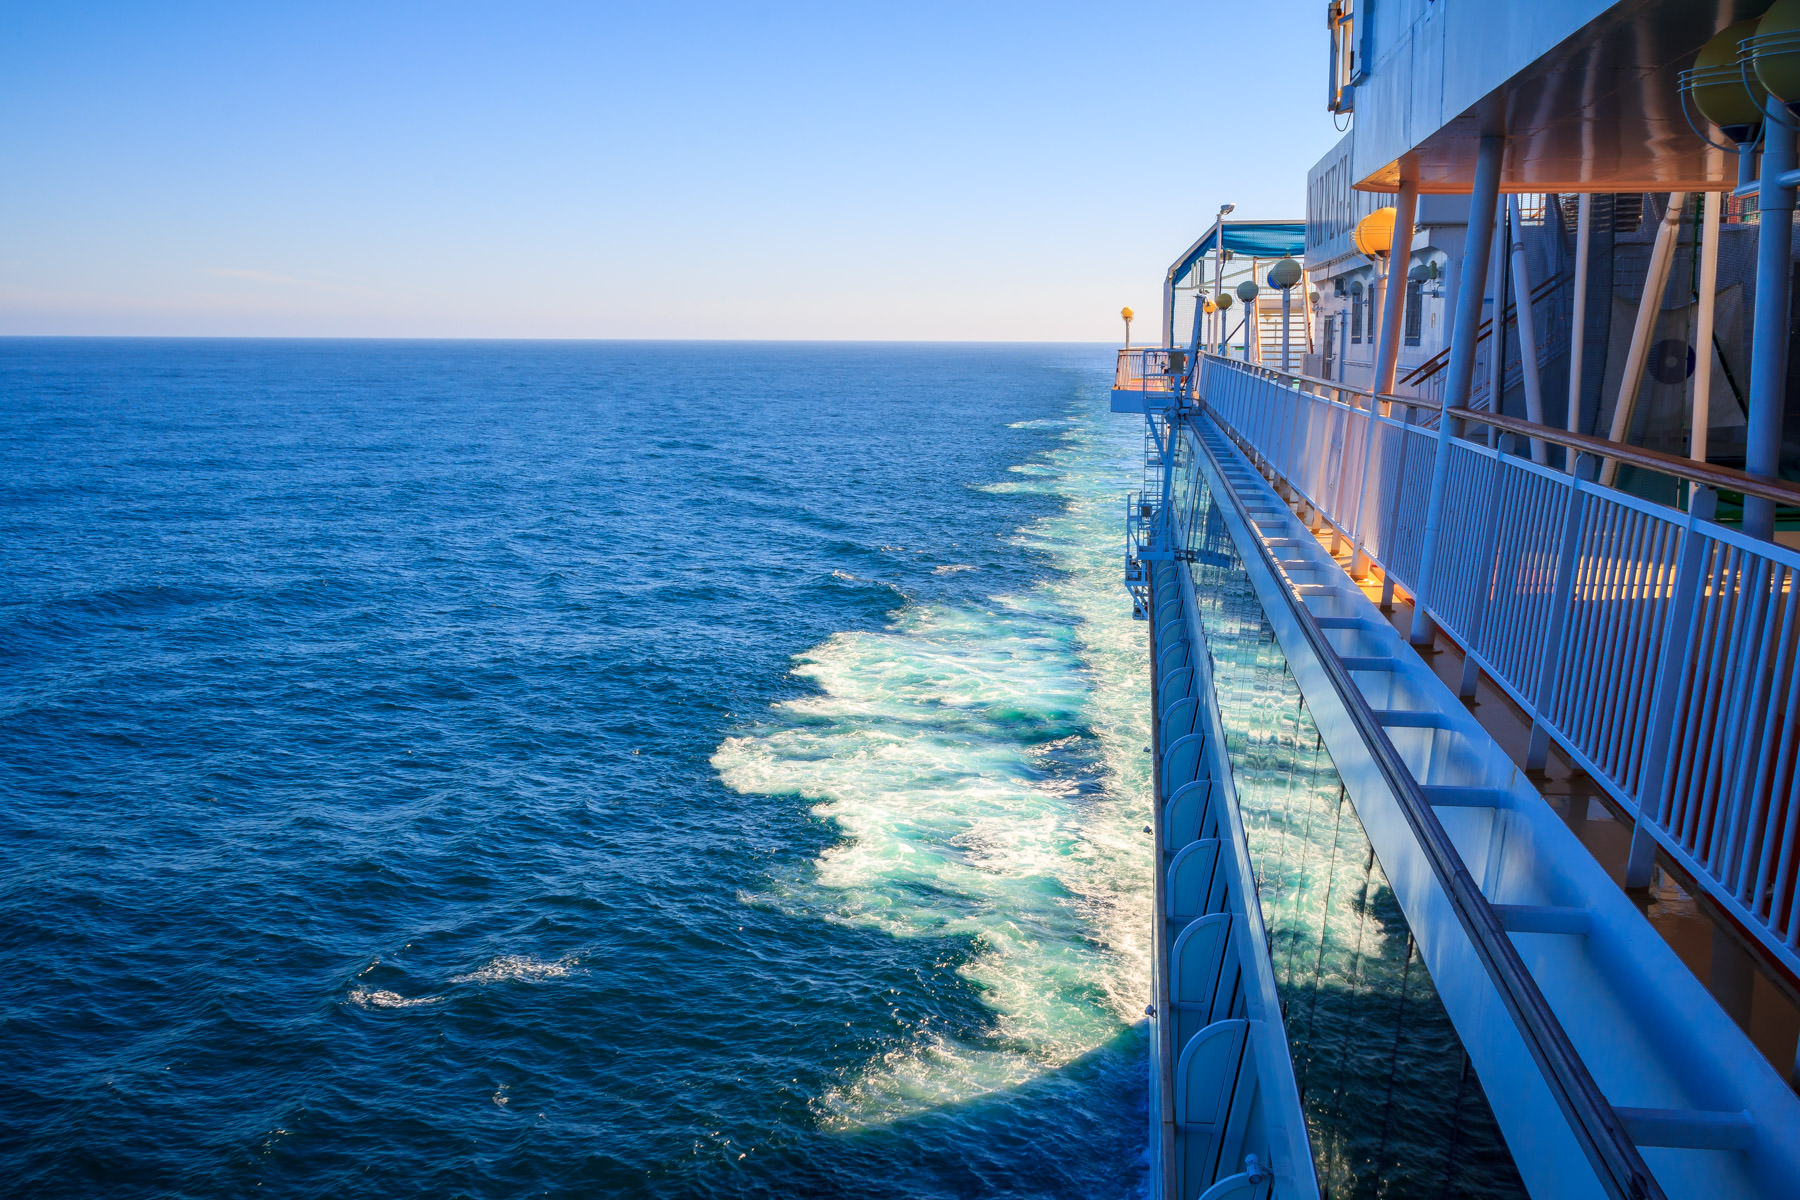 The cruise ship Norwegian Pearl cuts through the Pacific Ocean, somewhere off the west coast of British Columbia between Vancouver Island and Graham Island.